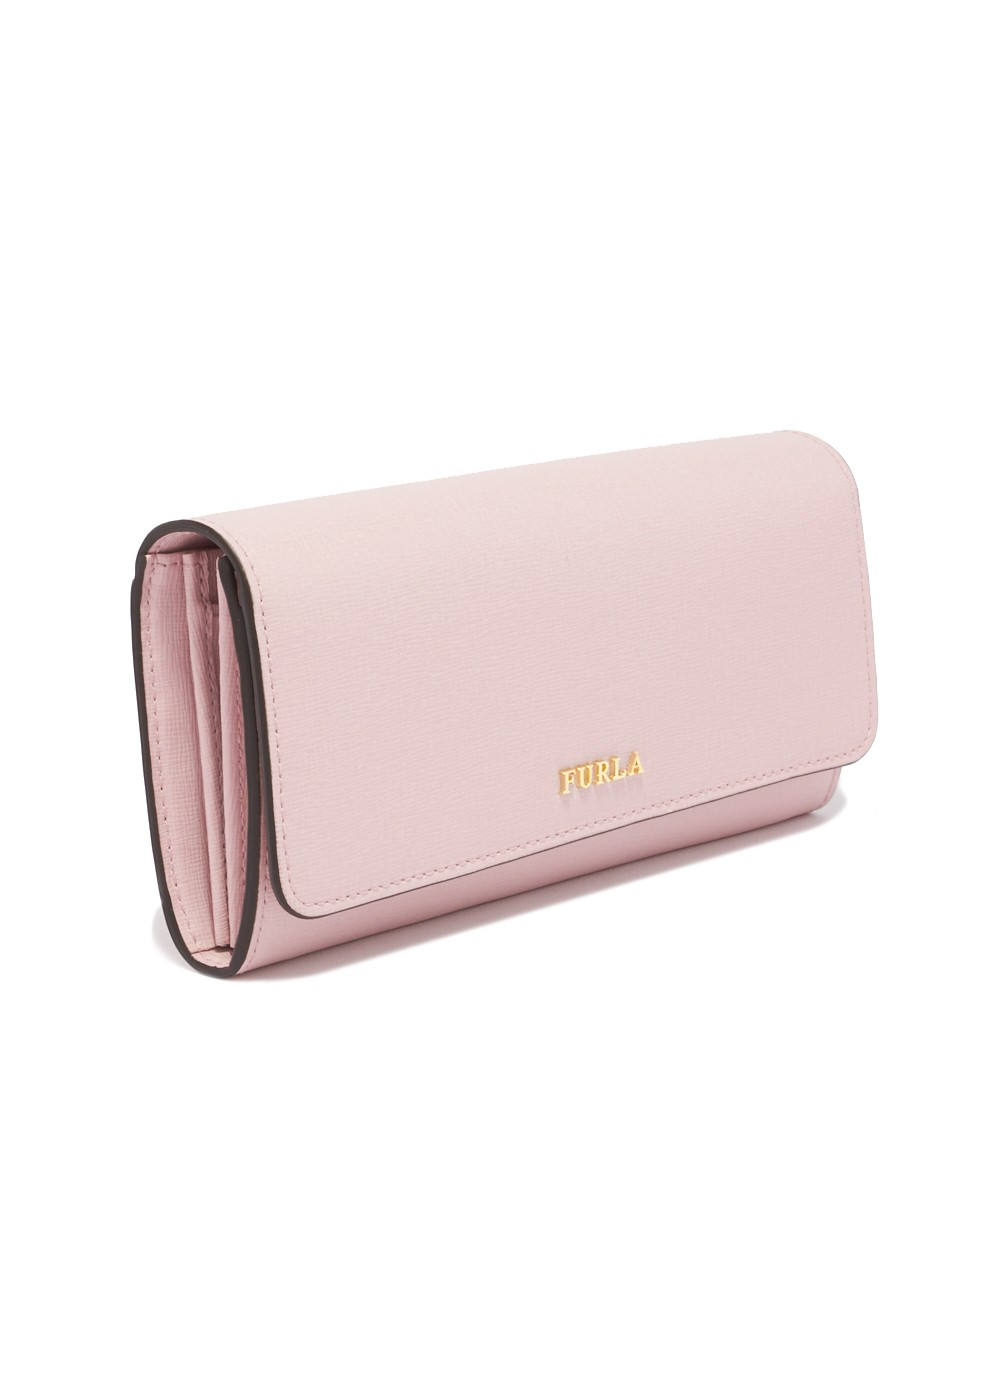 【最大50%OFF】BABYLON XL BIFOLD WALLET|CAMELIA e|レディース財布|FURLA - wallet and more